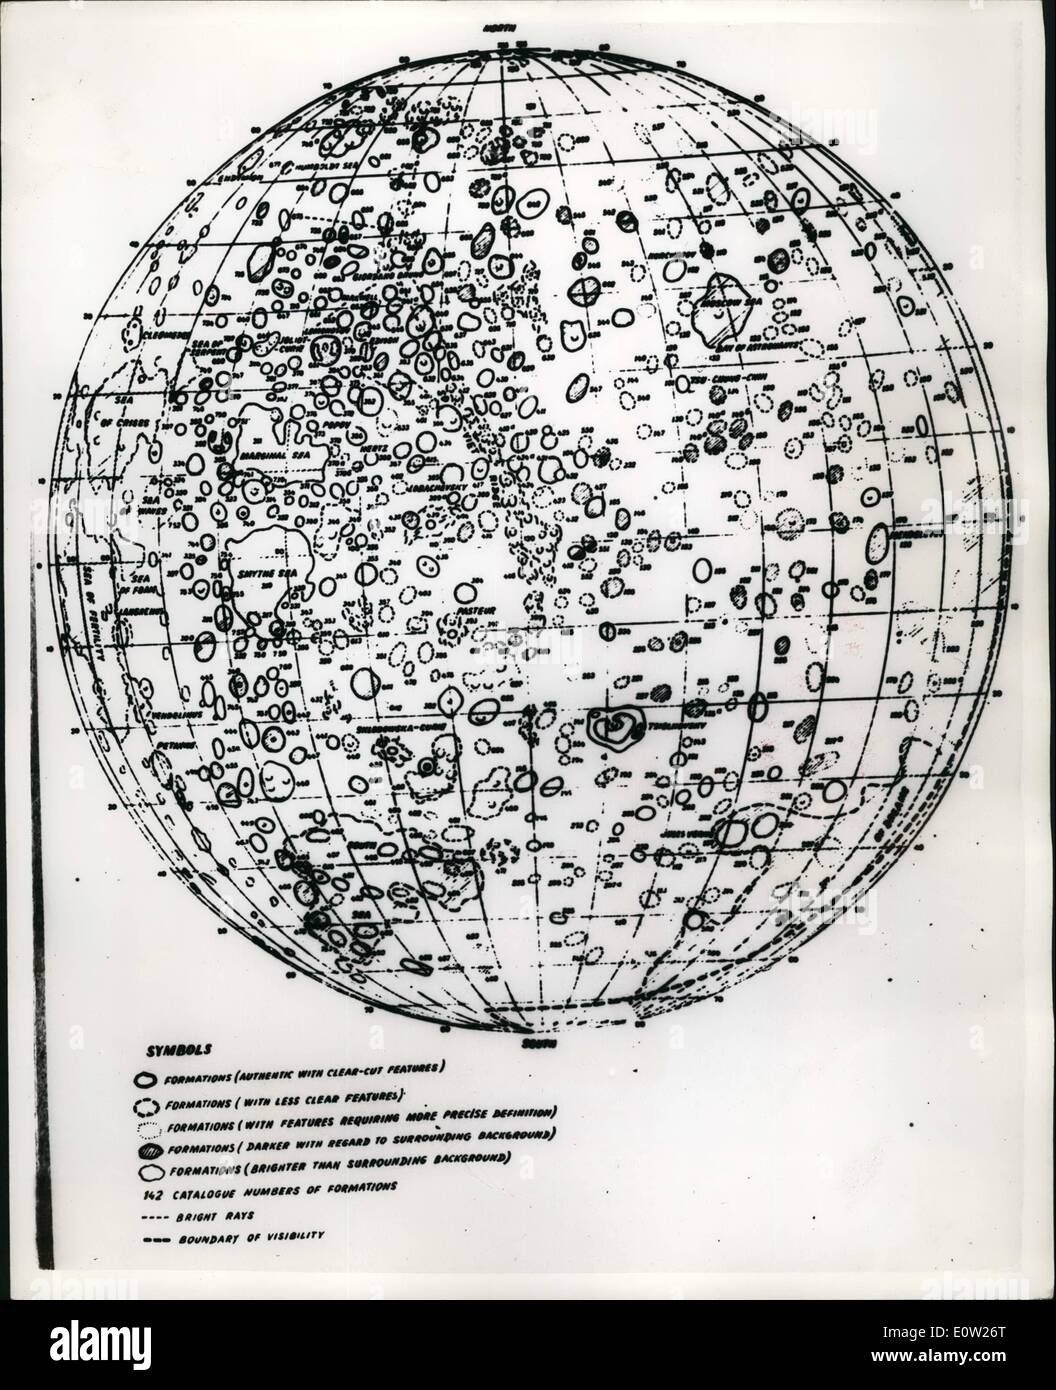 Dec. 12, 1960 - Amazing map of the reverse side of the moon. Seen for first time outside the Soviet Union. This is the first appearance outside the Soviet Union of the map of the reverse side of the Moon. It was compiled jointly by the Sternberg Institute of Astronomy and the Central Research Institute of Geodecy - Aerial Photography and Cartography in January - April 1960. On the basis of pictures relayed from the Soviet Automatic interplanetary station on October 7th 1959. The miridional strip between 30. deg. and 70 deg. long was compiled according to maps of the visible side of the moon. - Stock Image